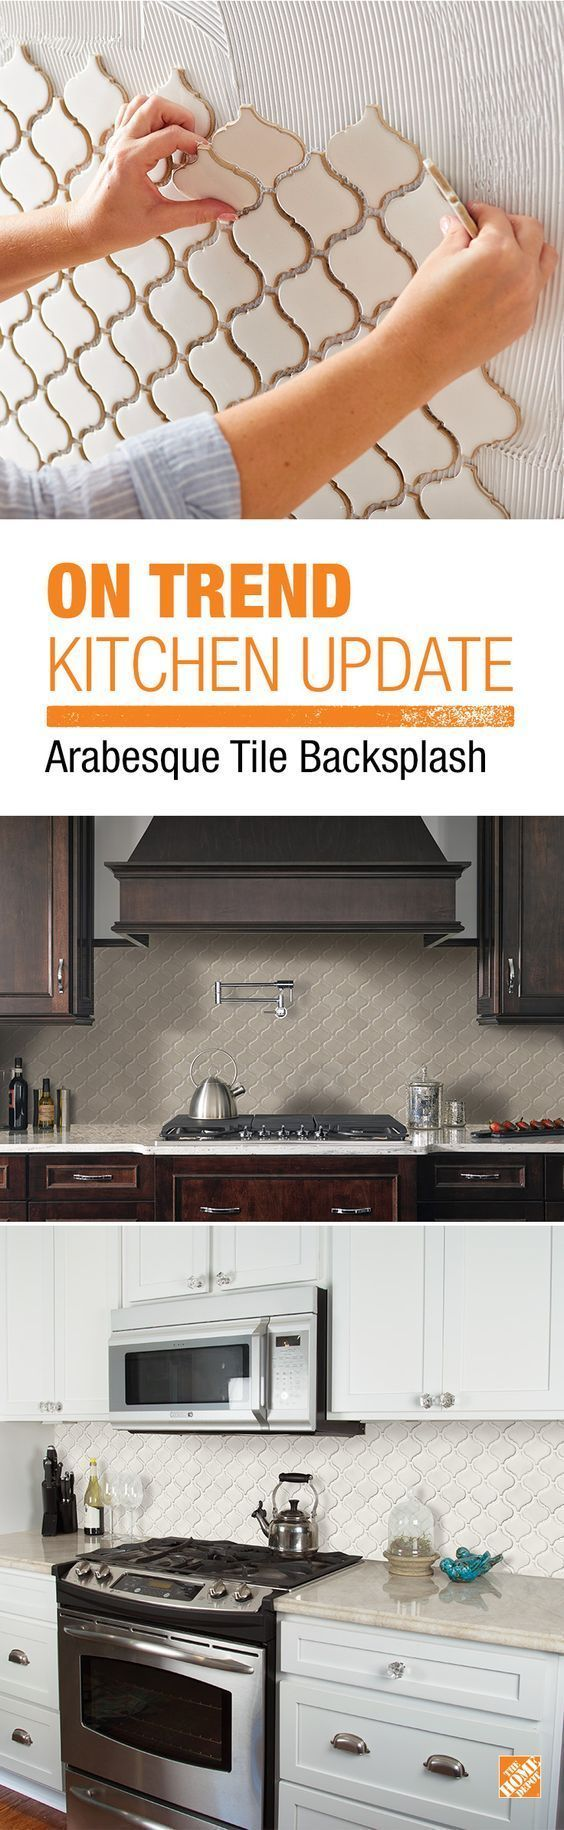 How to choose the right subway tile backsplash ideas and more how to choose the right subway tile backsplash ideas and more beveled subway tile subway tile backsplash and subway tiles dailygadgetfo Gallery